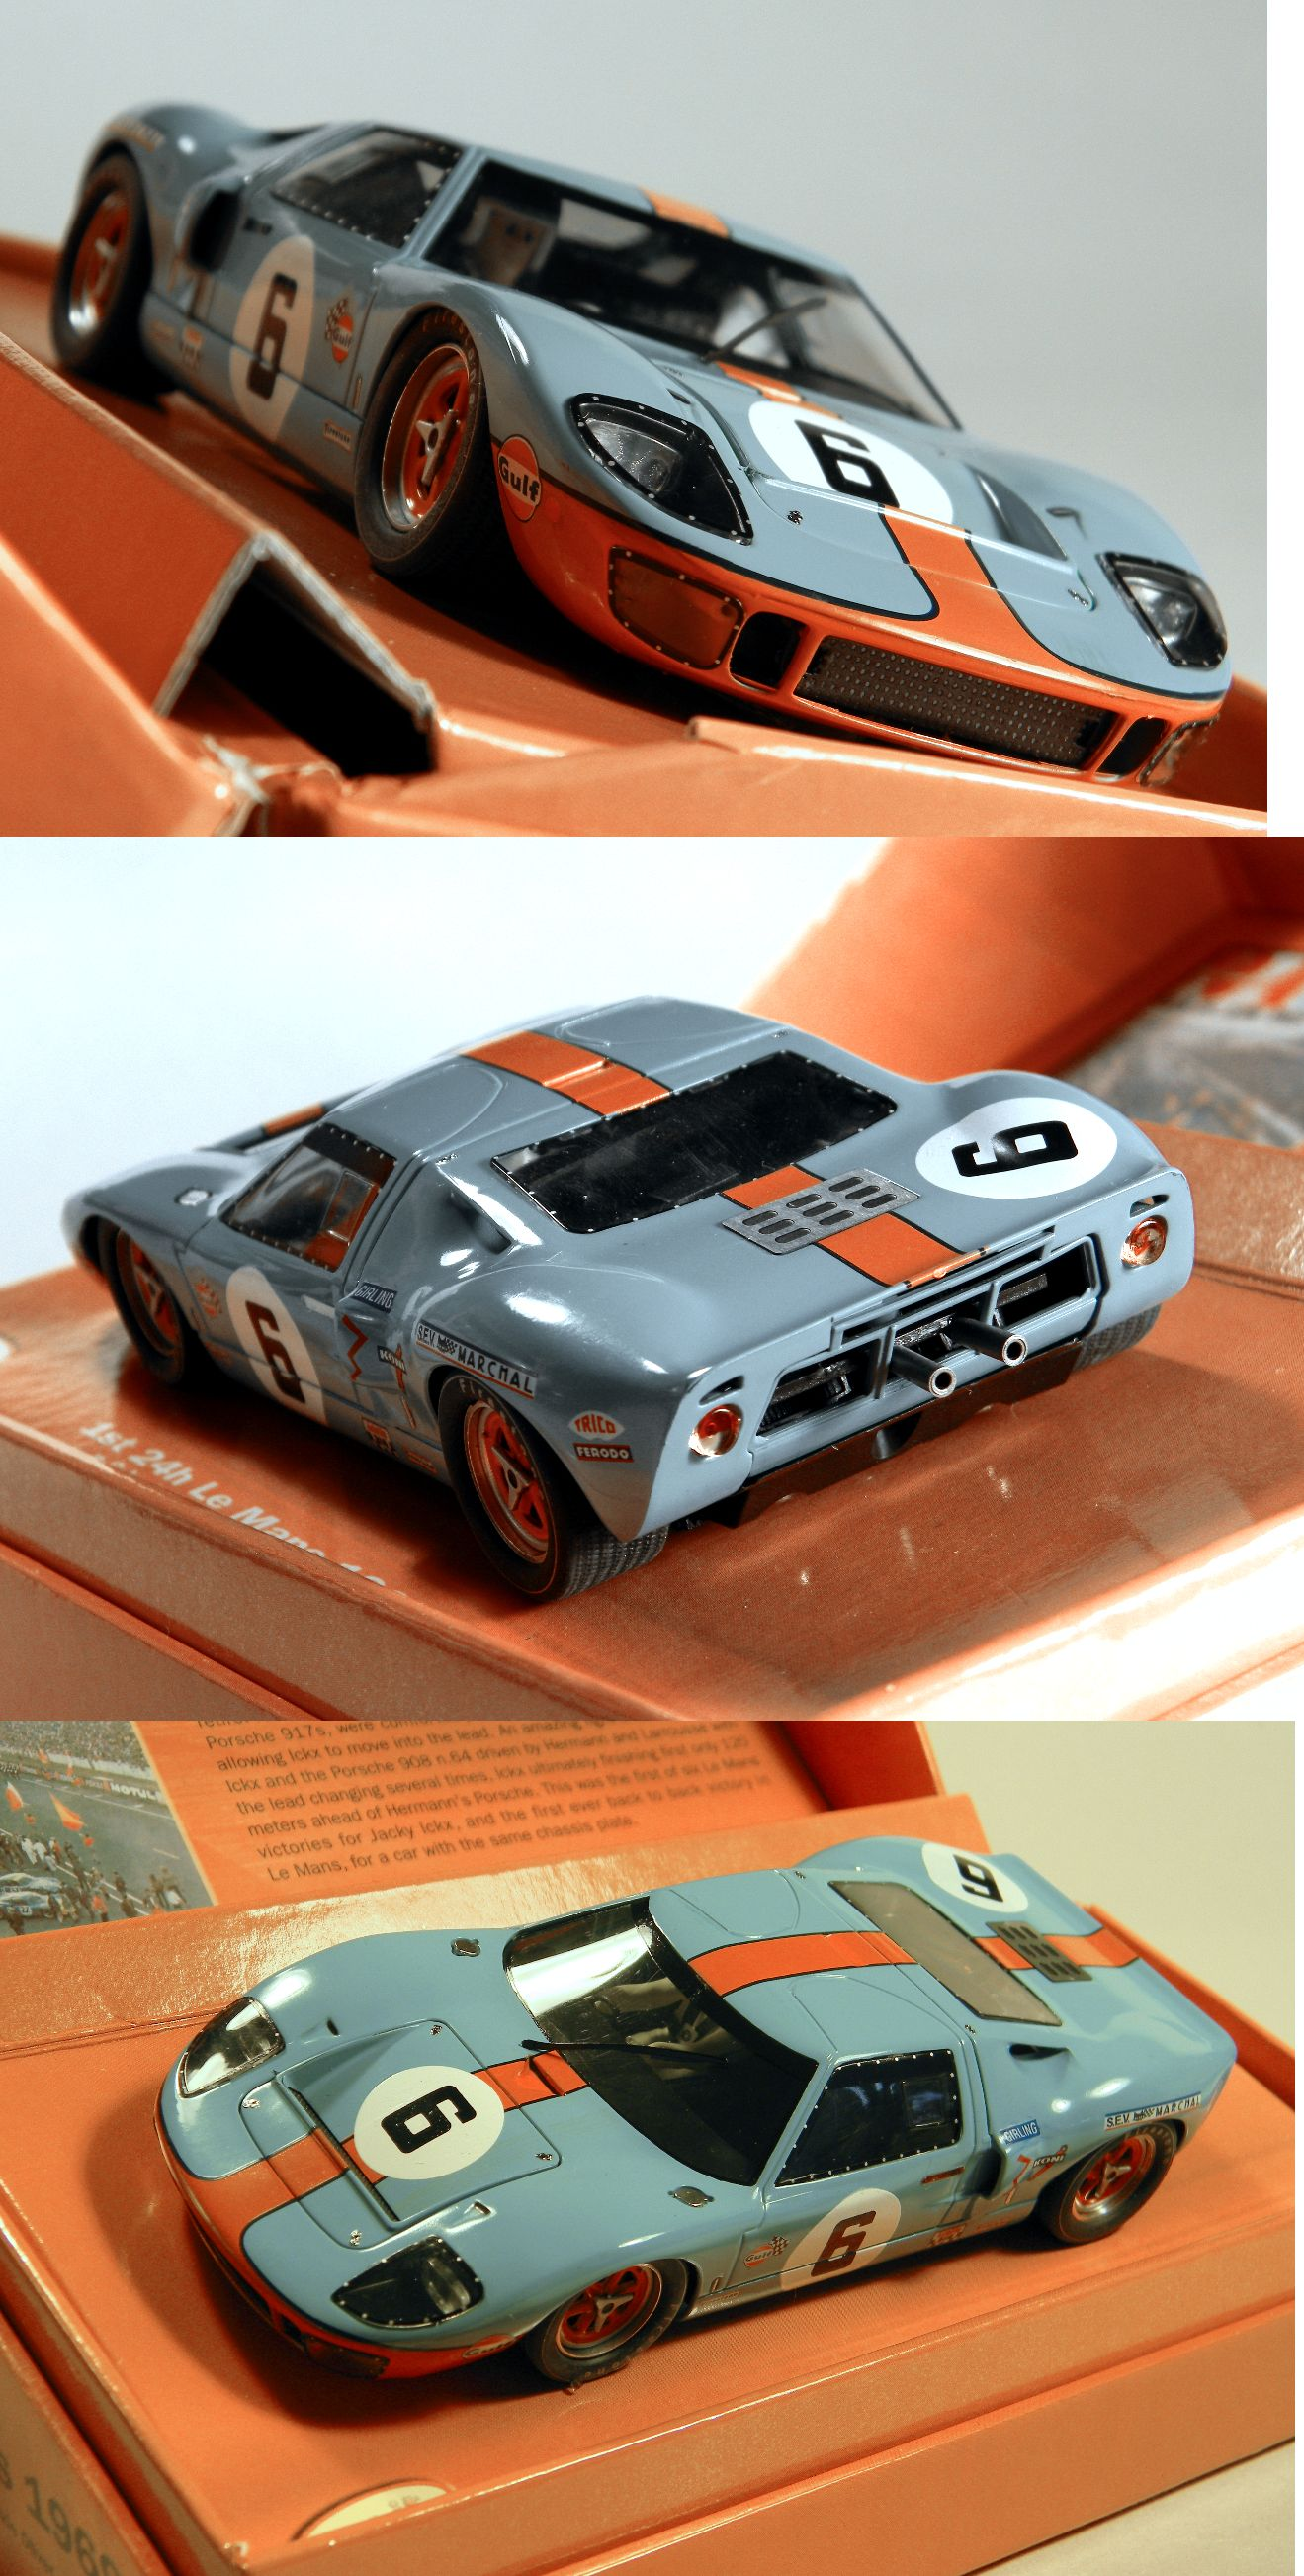 1970 Now 4781 Slot It Cw09 Ford Gt40 1st Le Mans Ickx And Oliver